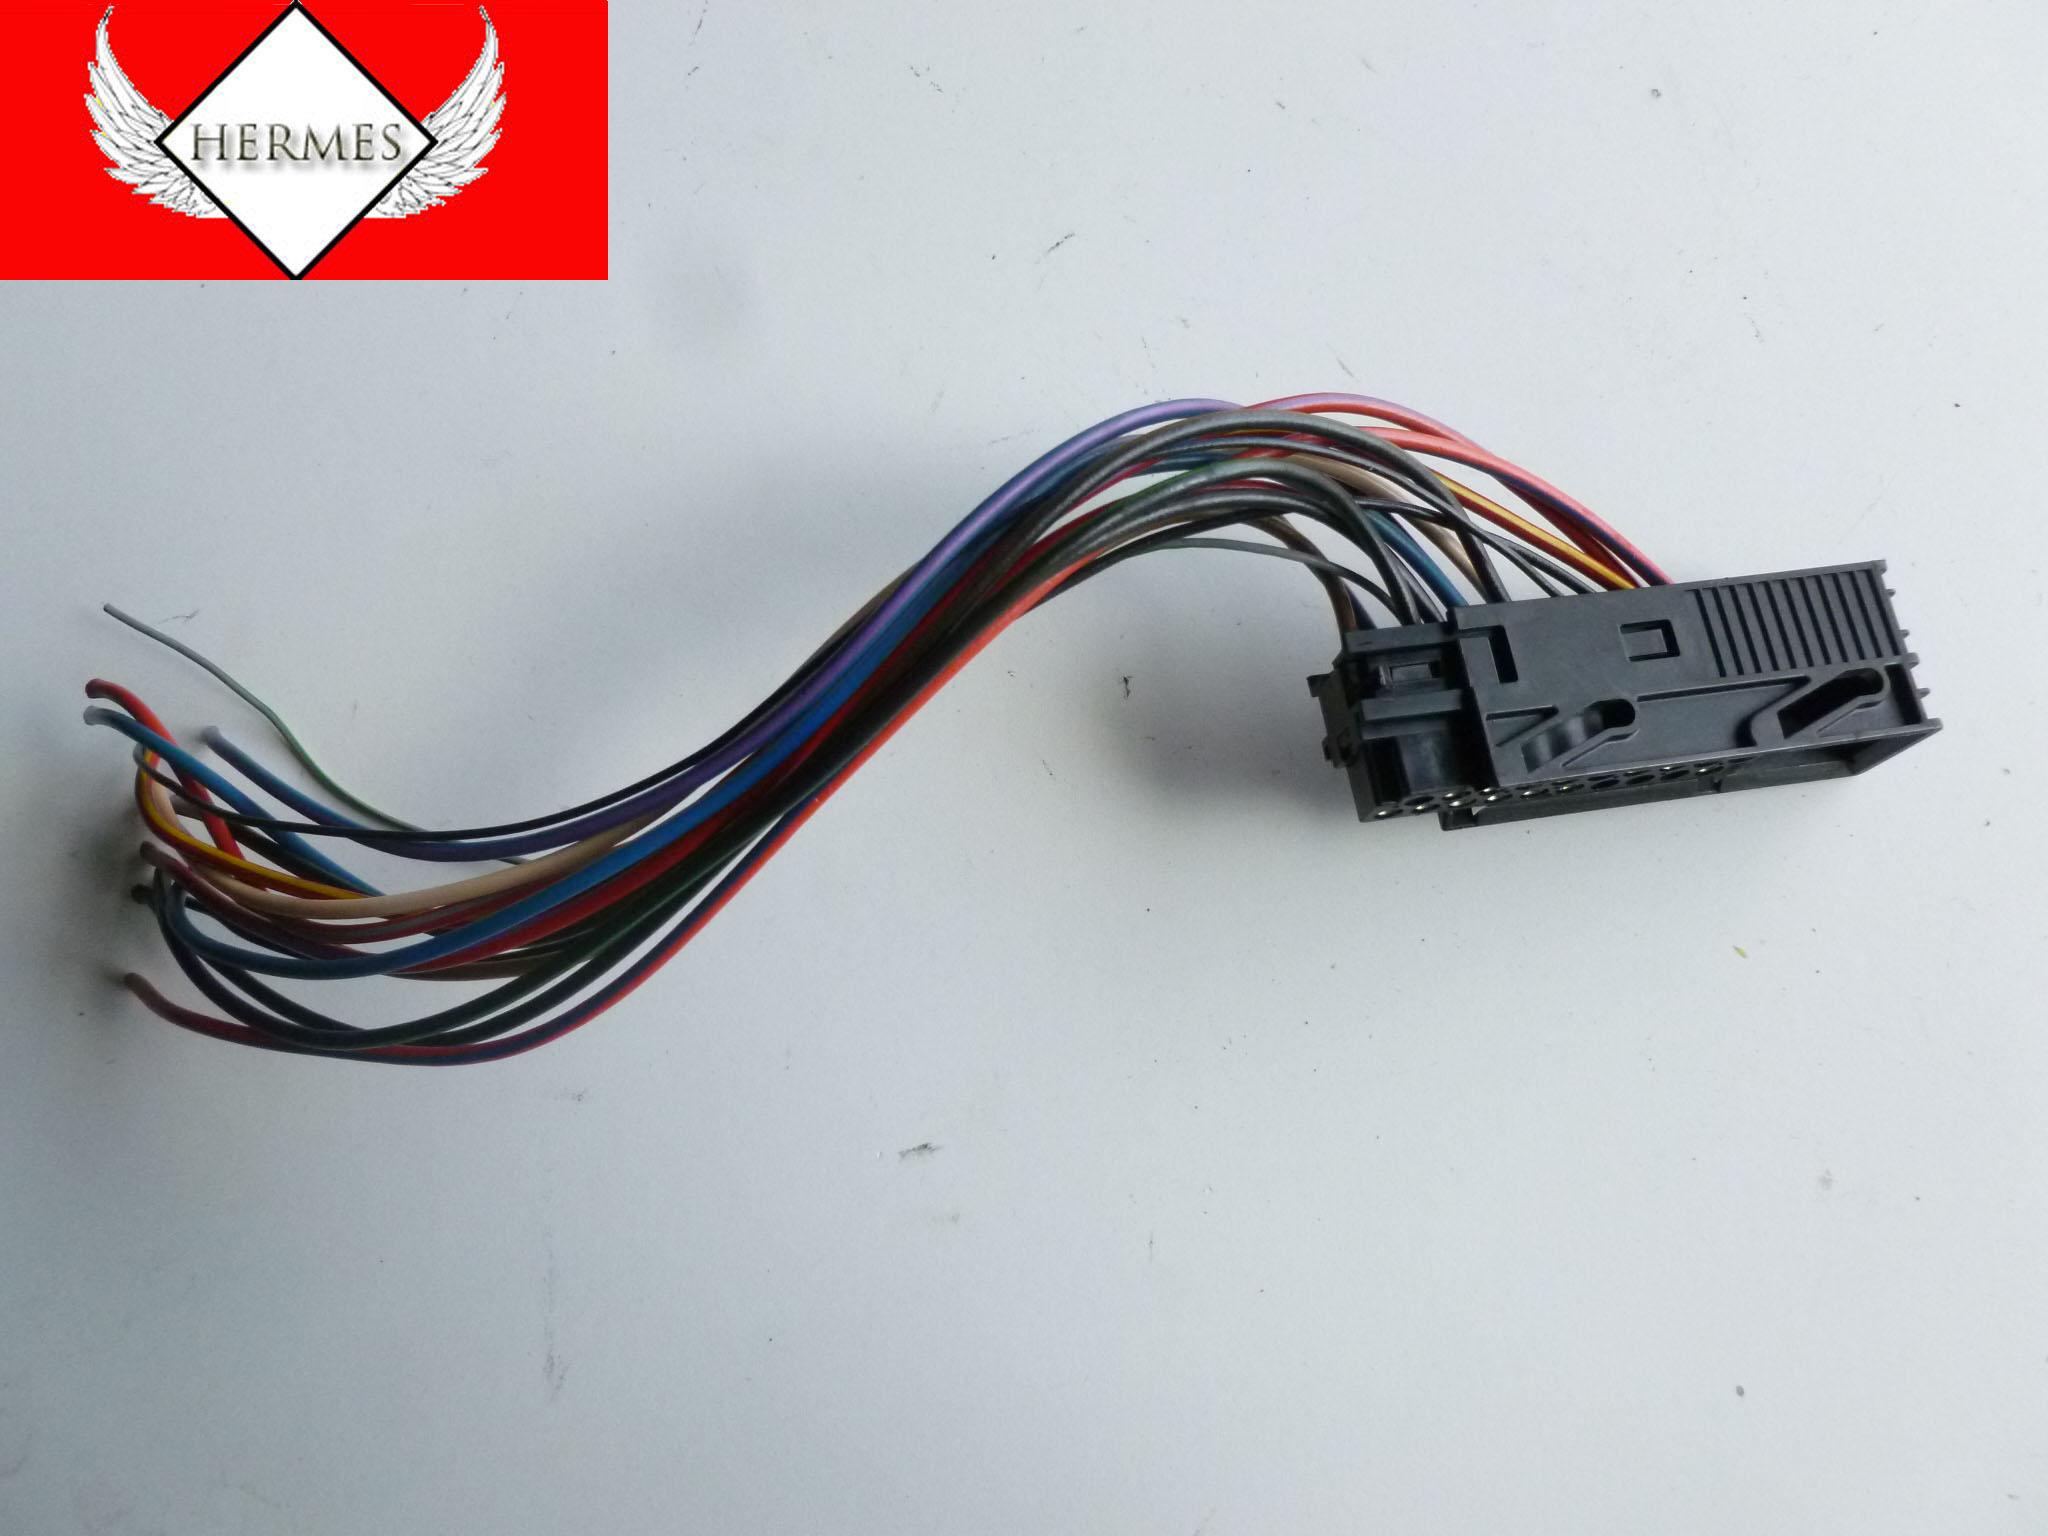 1997 Bmw 528i E39 Gm Iii High 12v Control Module Connector Plug Vehicle Wiring Pigtails W Pigtail 18288611